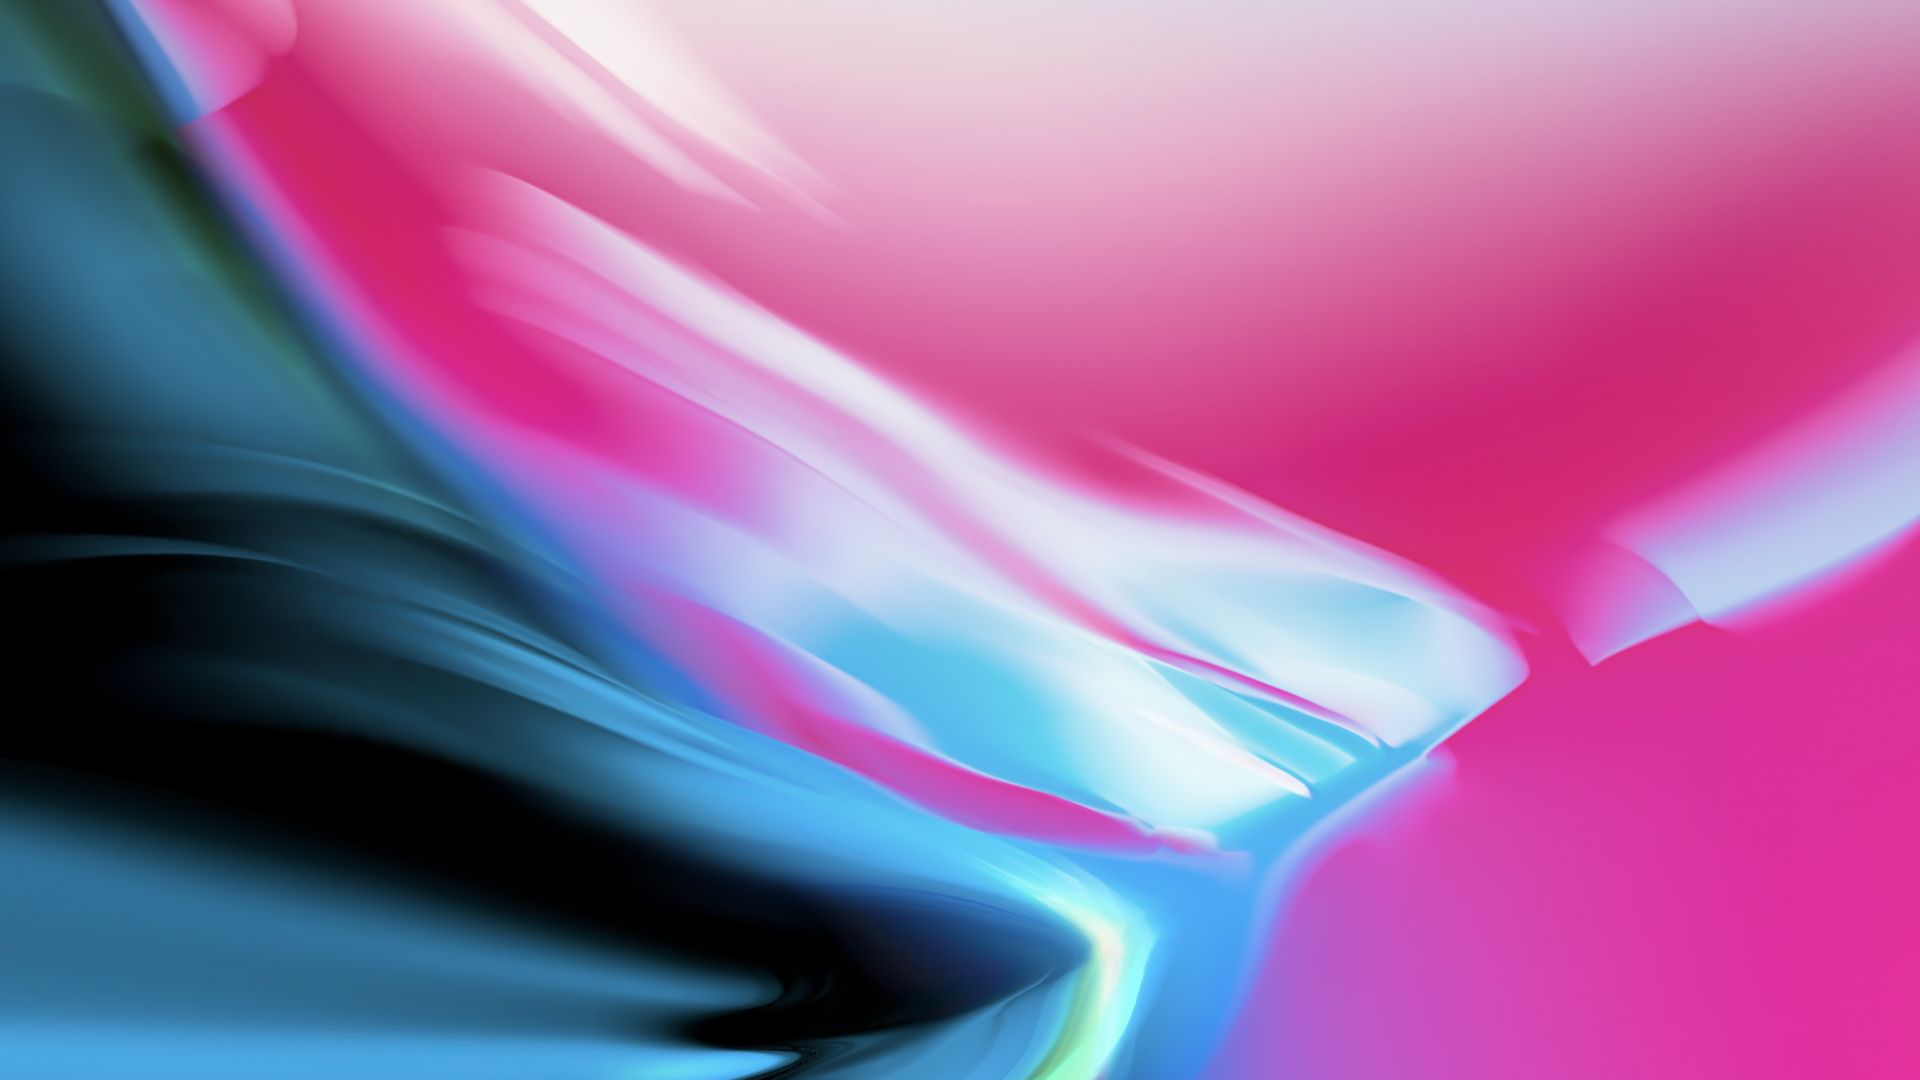 Iphone Wallpaper: Wallpaper IPhone X Wallpaper, IPhone 8, IOS 11, Colorful